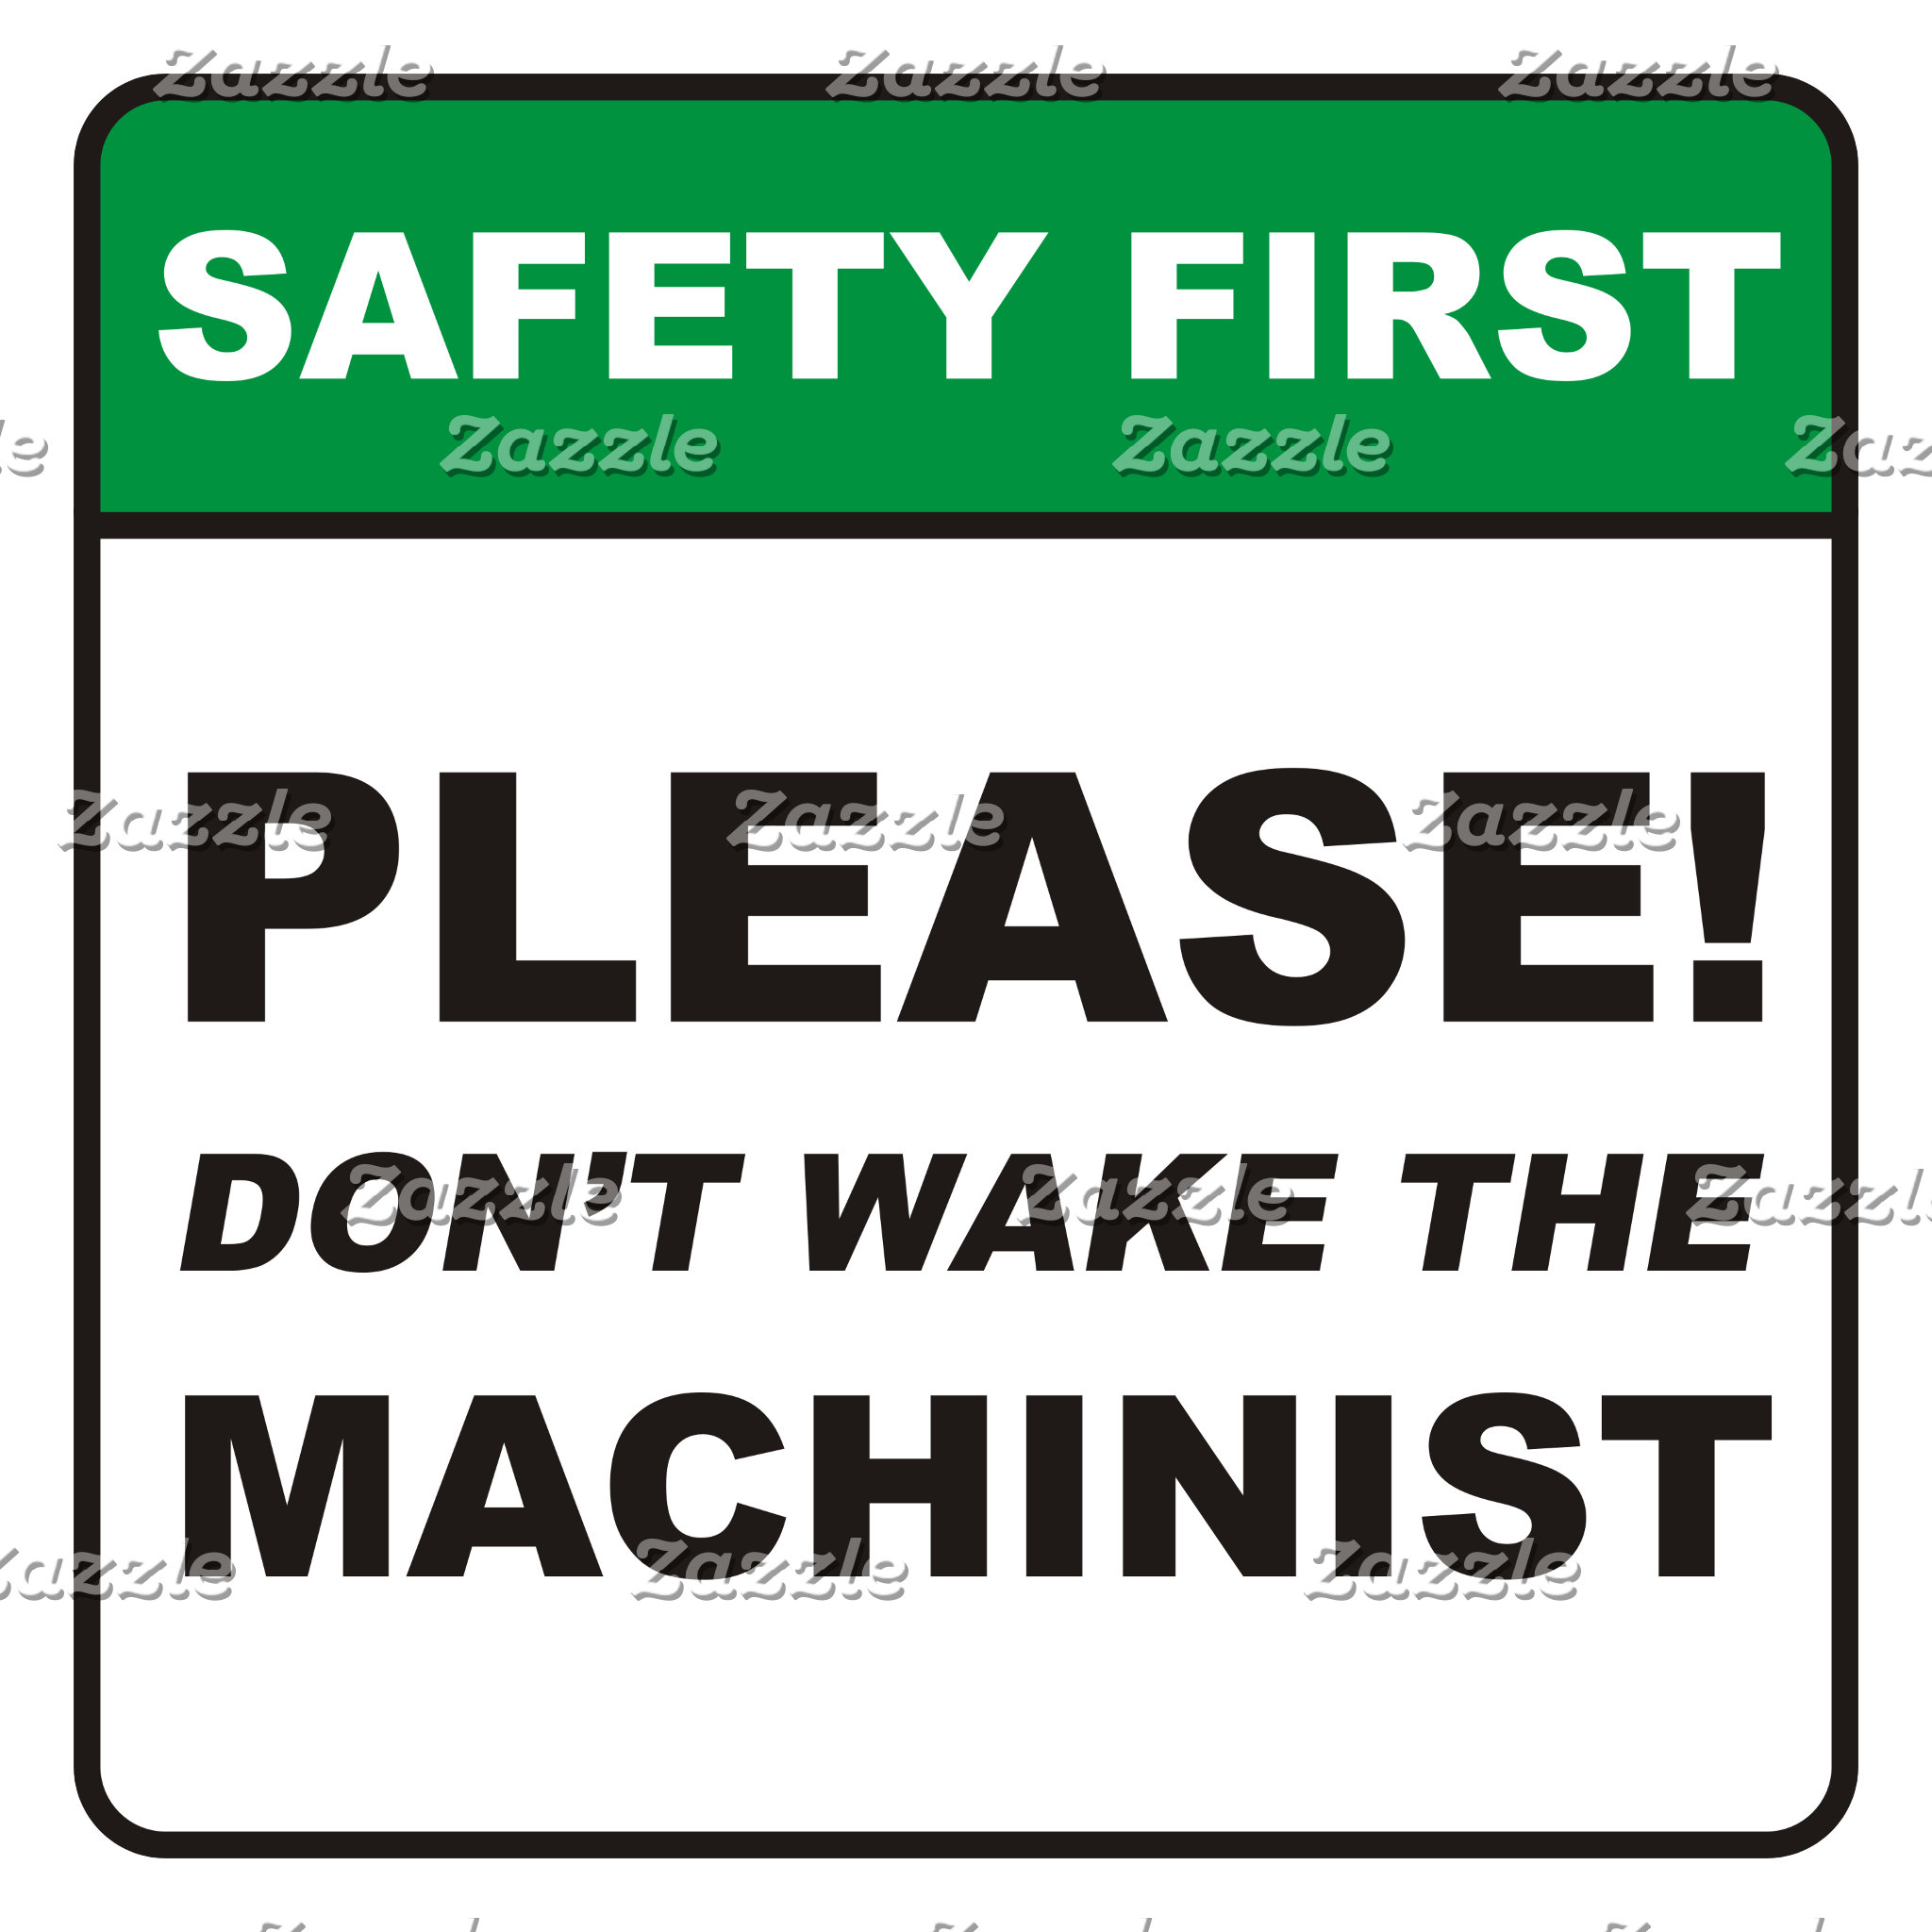 Don't wake the Machinist!